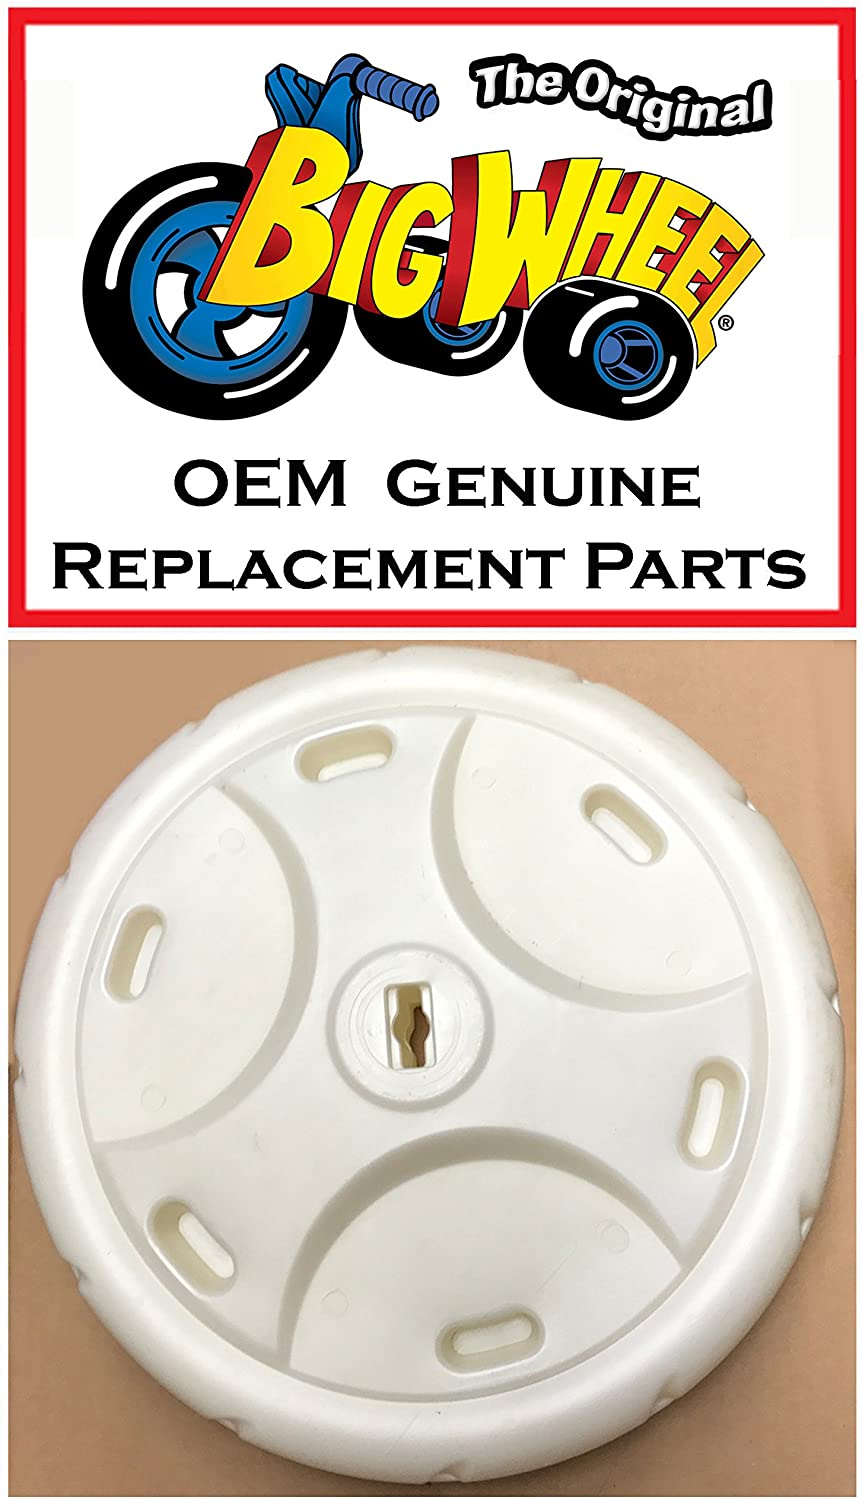 16in WHITE FRONT WHEEL for The Original Big Wheel Racer/Mighty Wheels, Original Replacement Parts